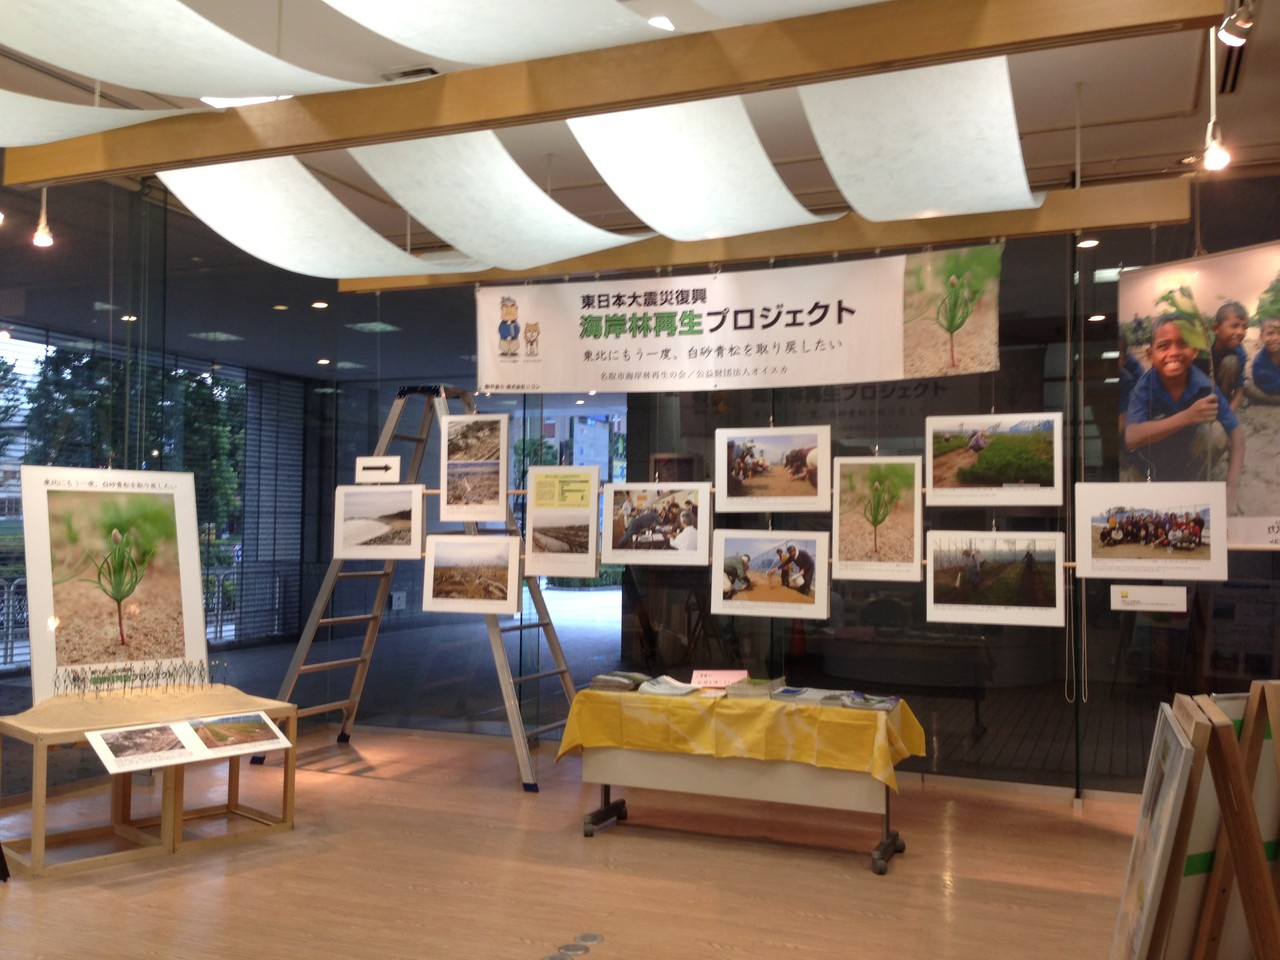 panels about the project of reviving coastal forest in Miyagi prefecture